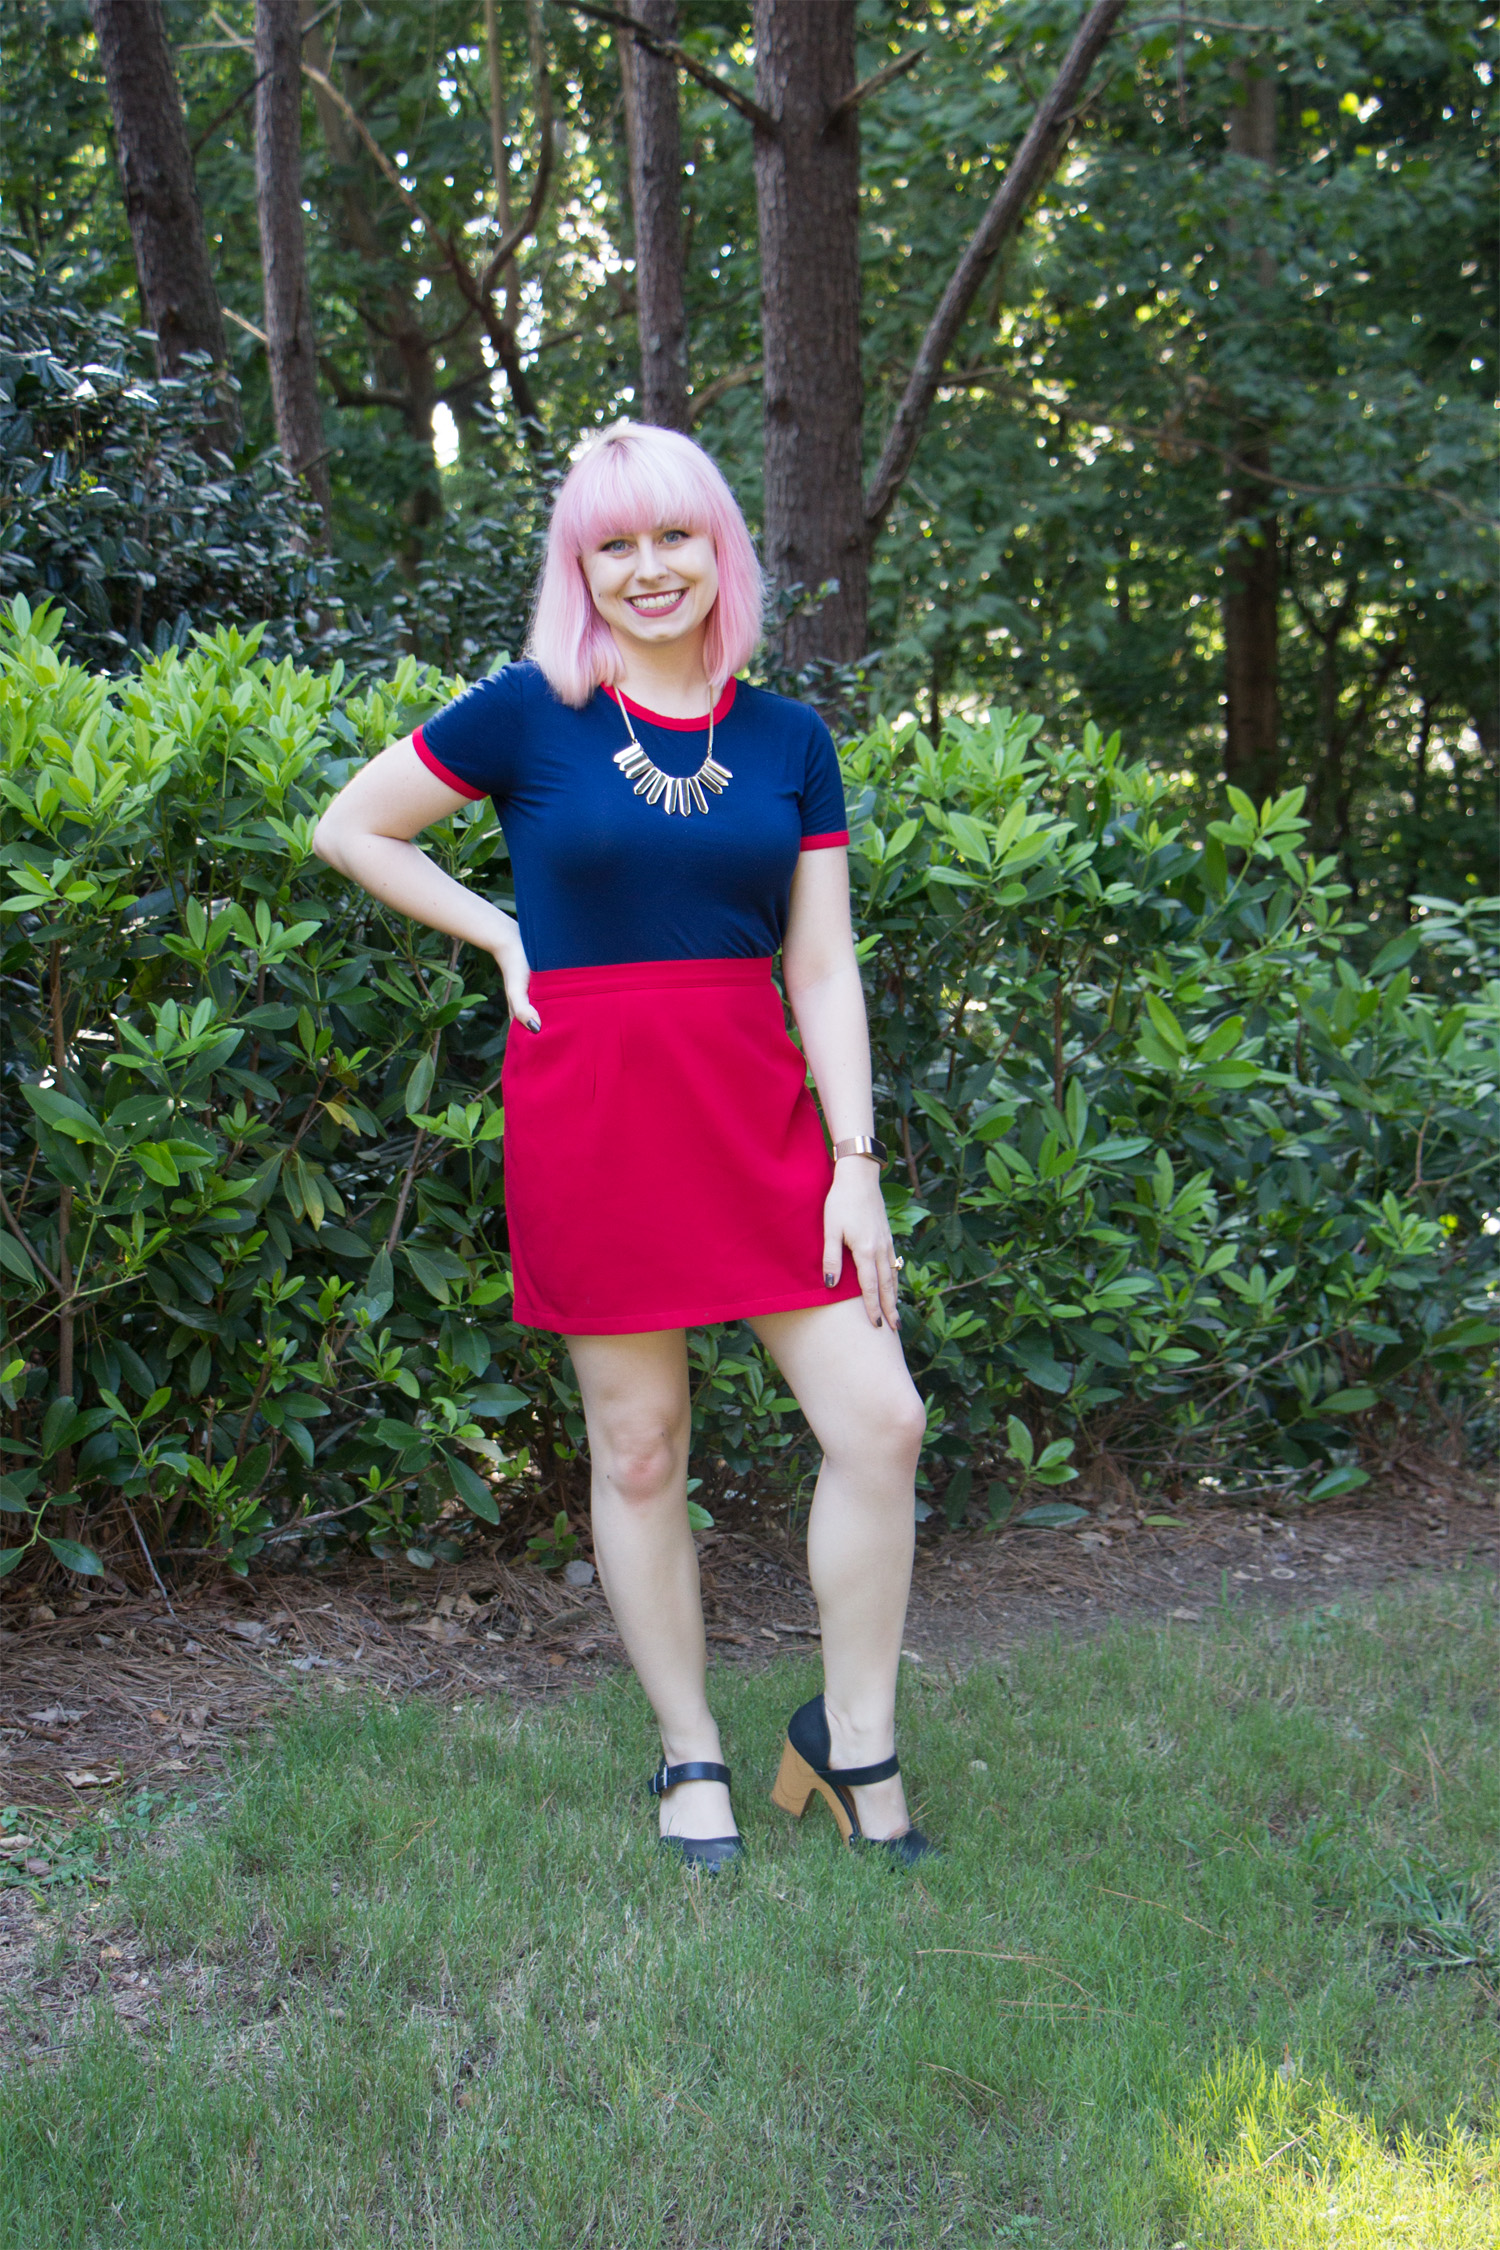 Navy Blue and Red Outfit. Wearing Blue Clogs and a Red Mini Skirt